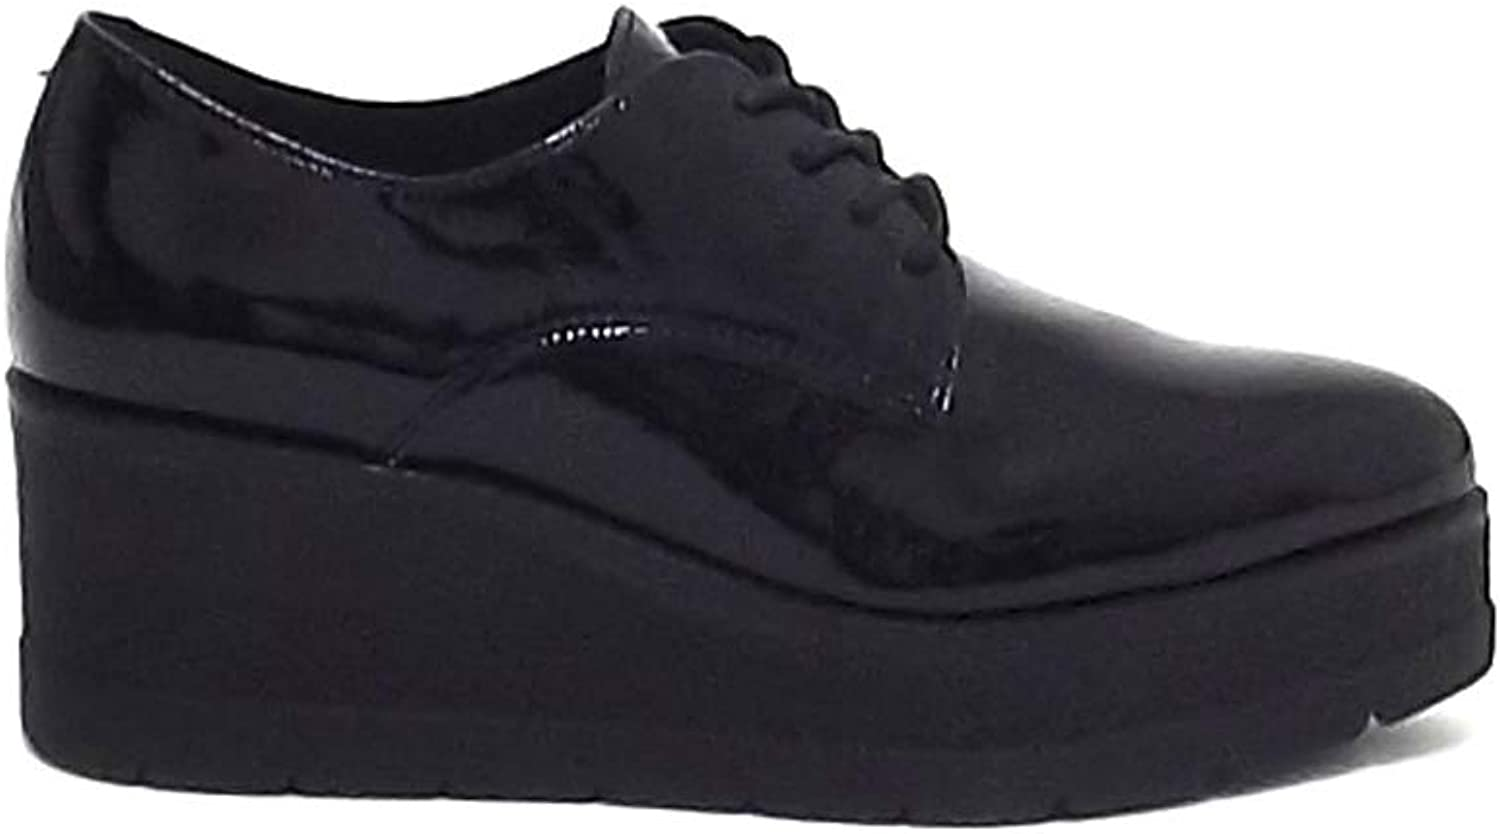 Janet sport Men's Trainers Black Black